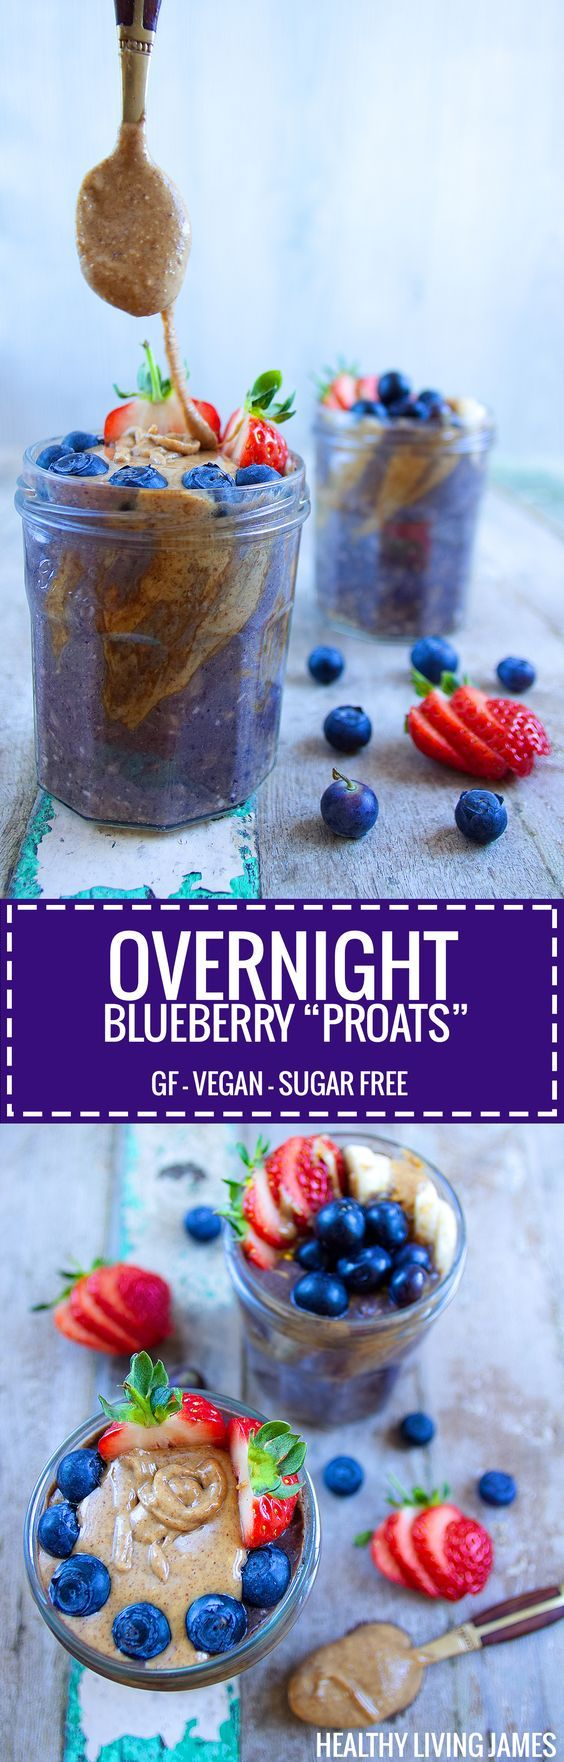 Overnight Blueberry Proats (protein oats) that are gluten free, vegan and sugar free. Amazing breakfast to grab on the go in the morning with only 2 minutes prep time the night before! Perfect cold but filling breakfast in this hot weather. It also tastes as good as it looks I promise